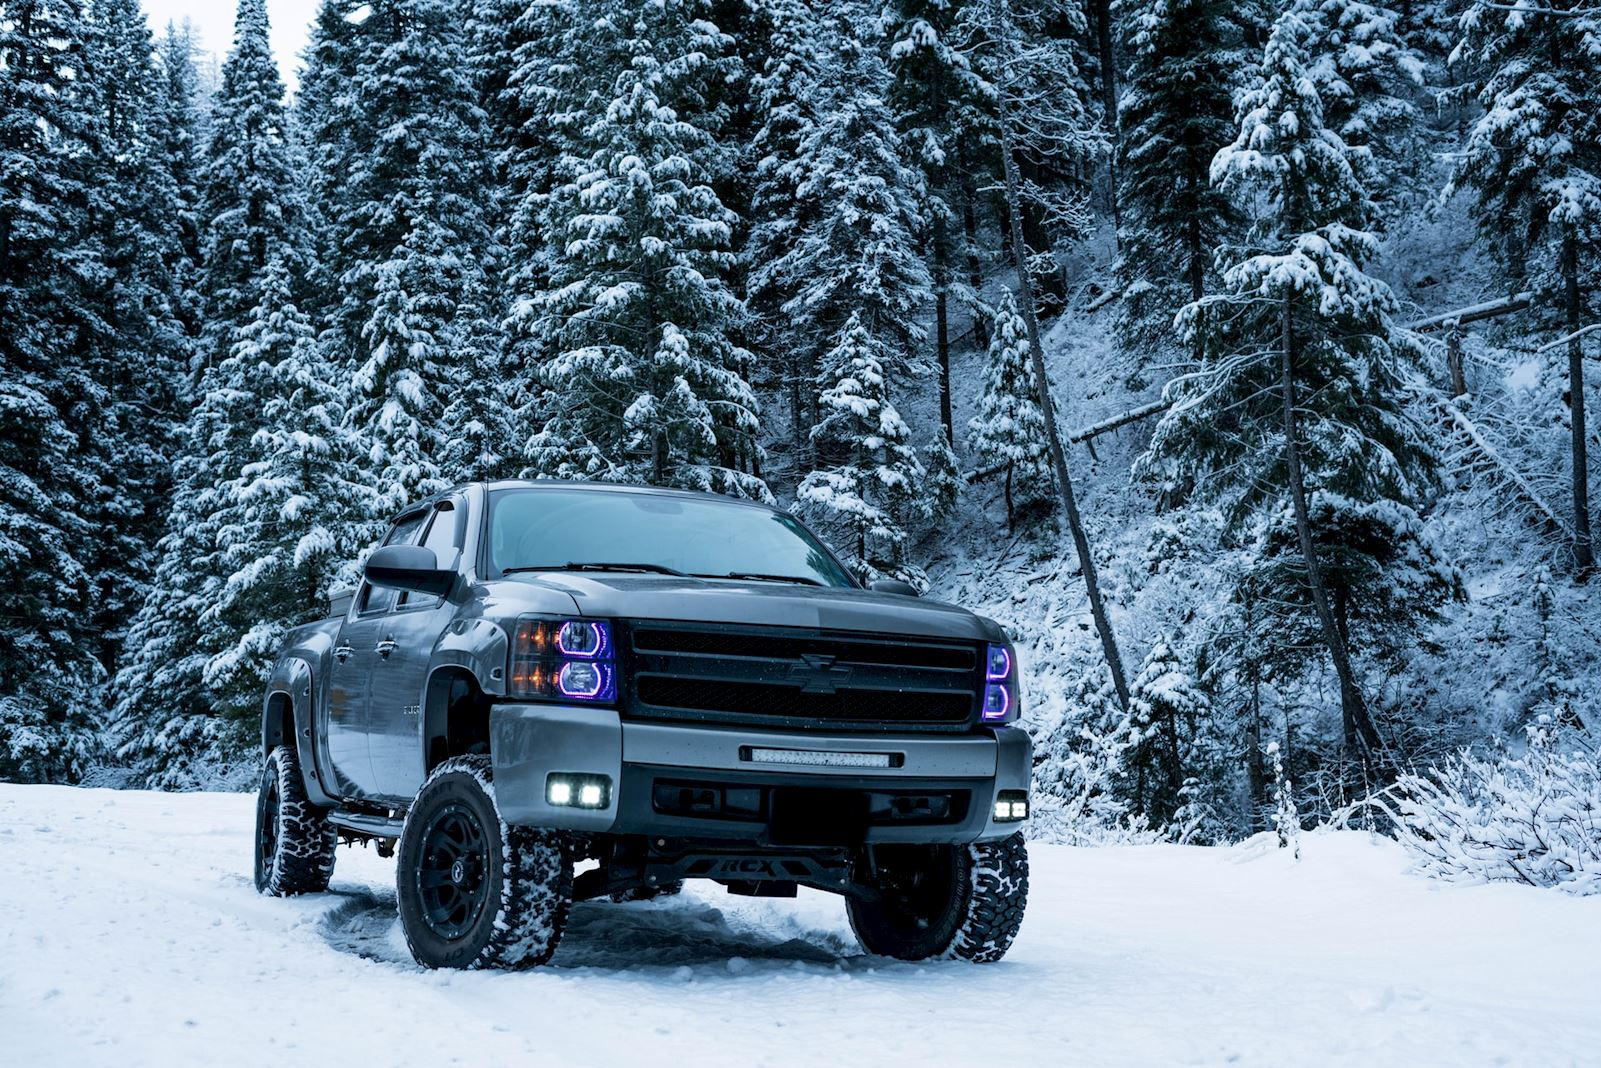 Where Are Chevy Trucks Made?